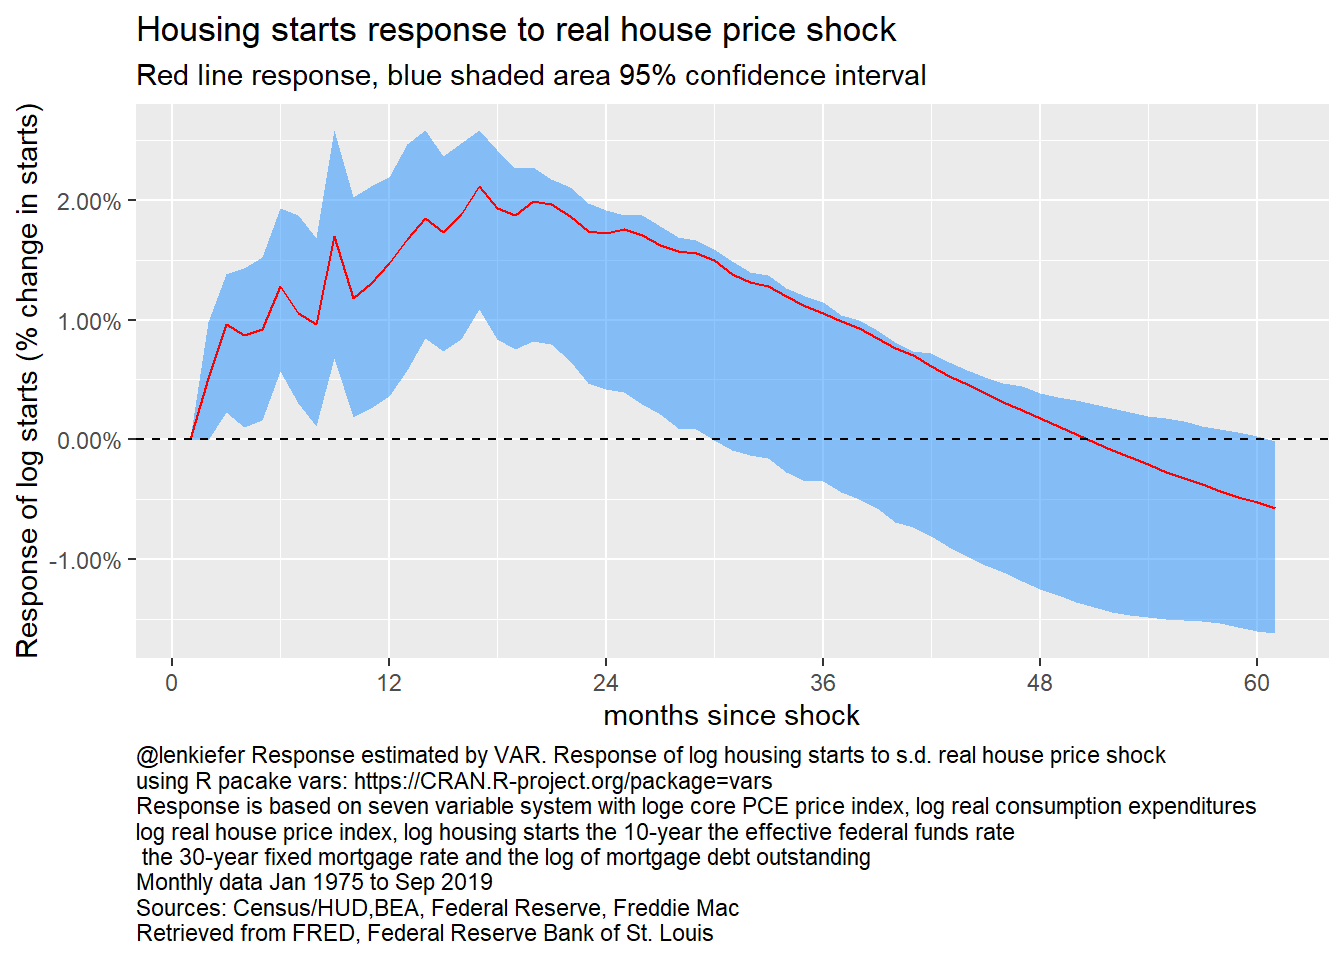 Response of log housing starts to log real house prices, 7 variable VAR